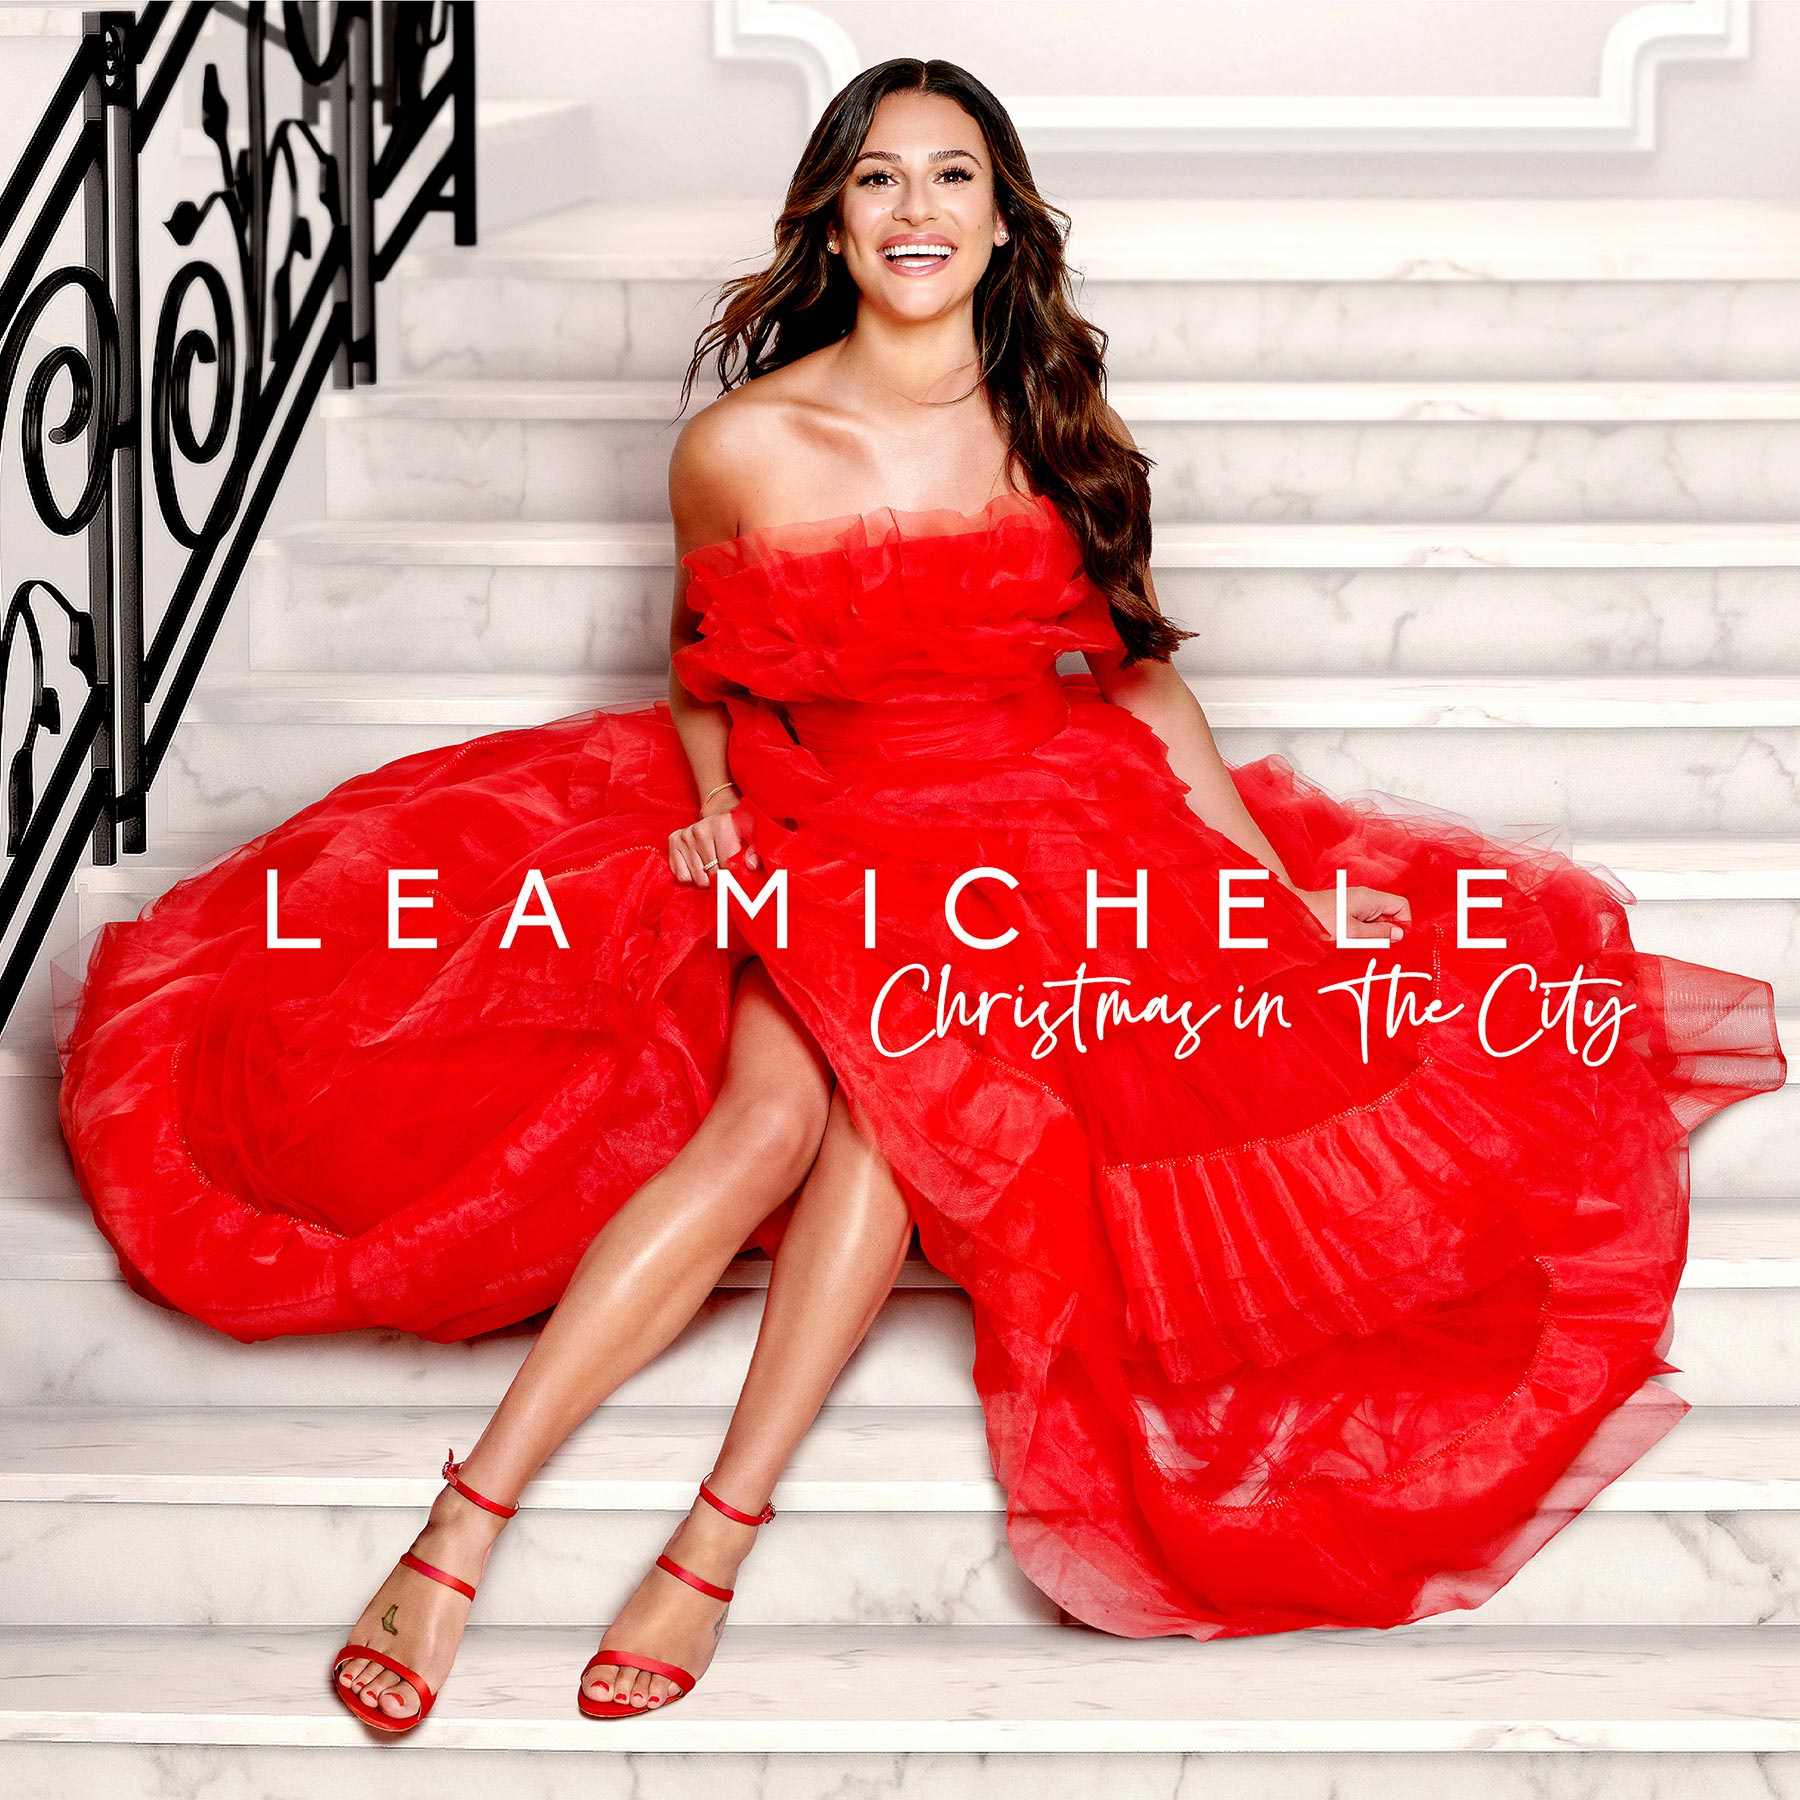 Christmas in the City by Lea Michele